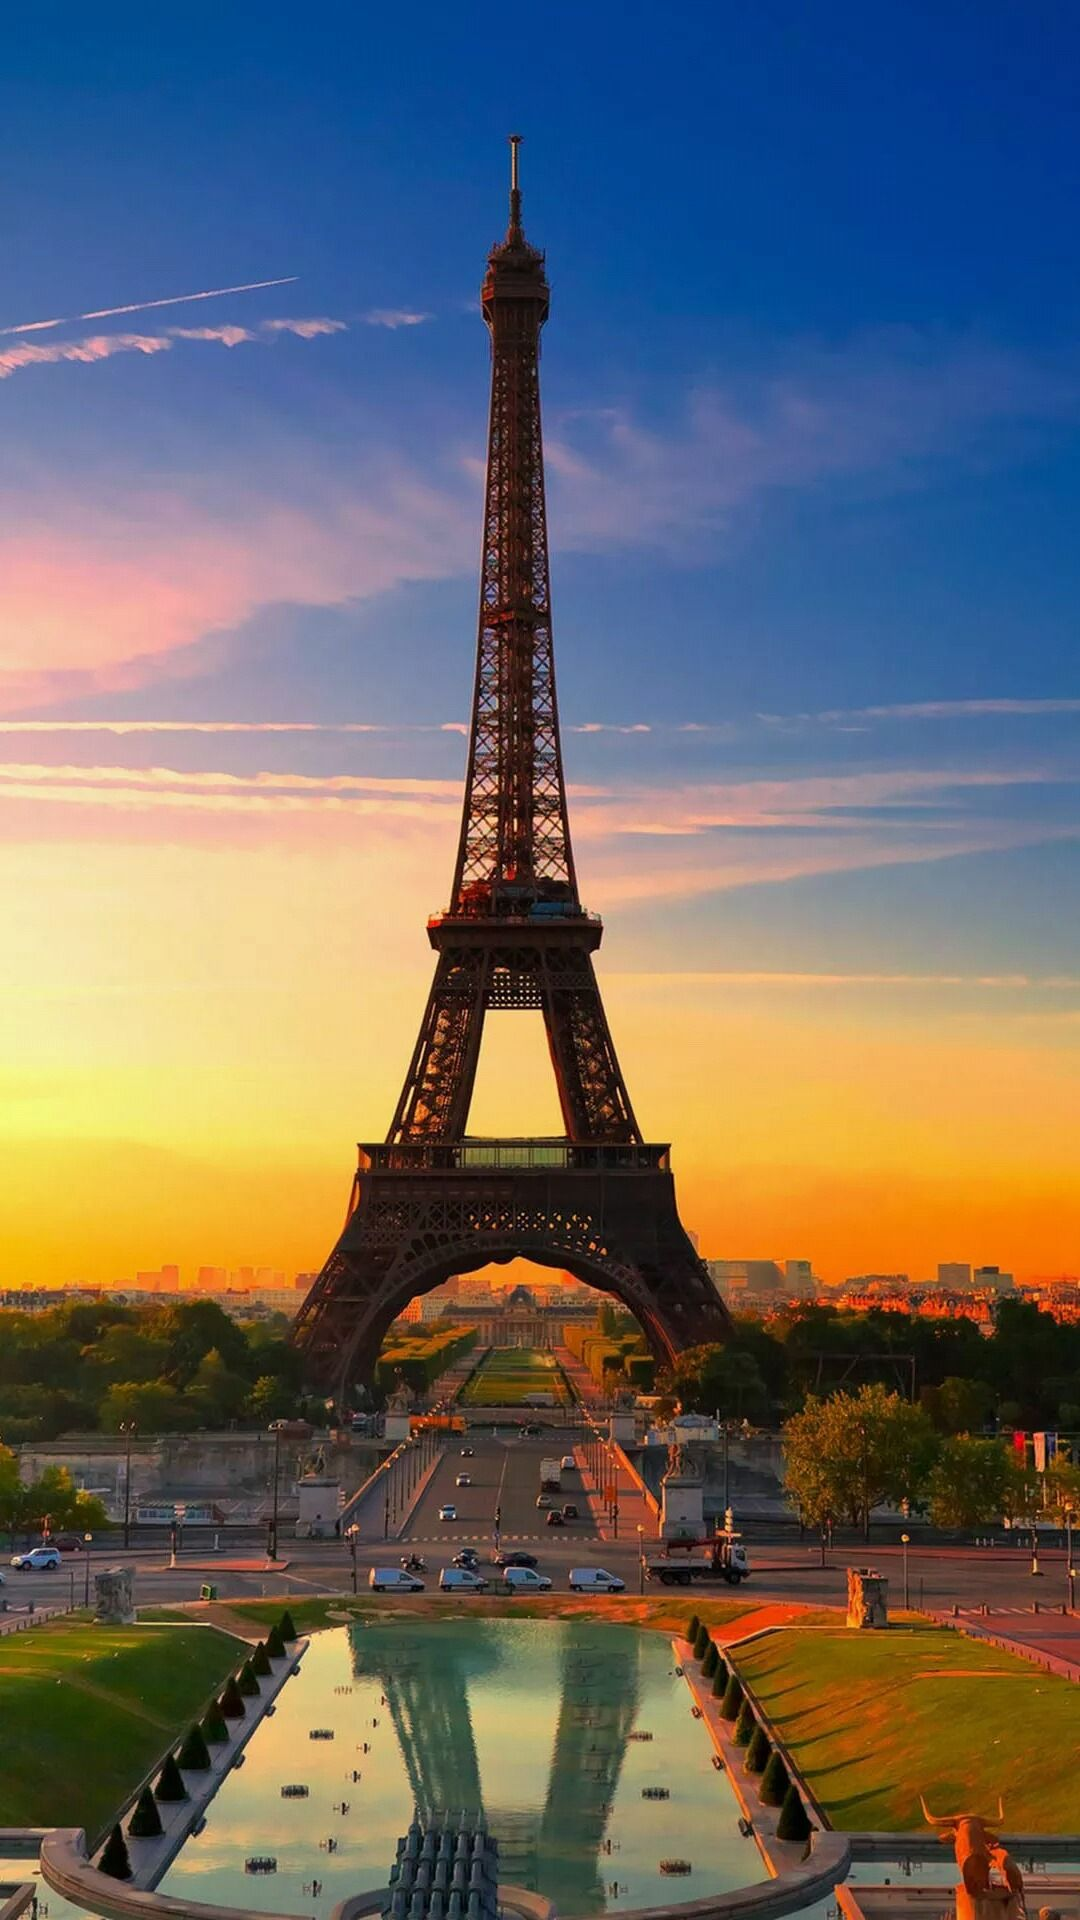 Sunset shot of Eiffel Tower. Pray for Paris, Pray for the